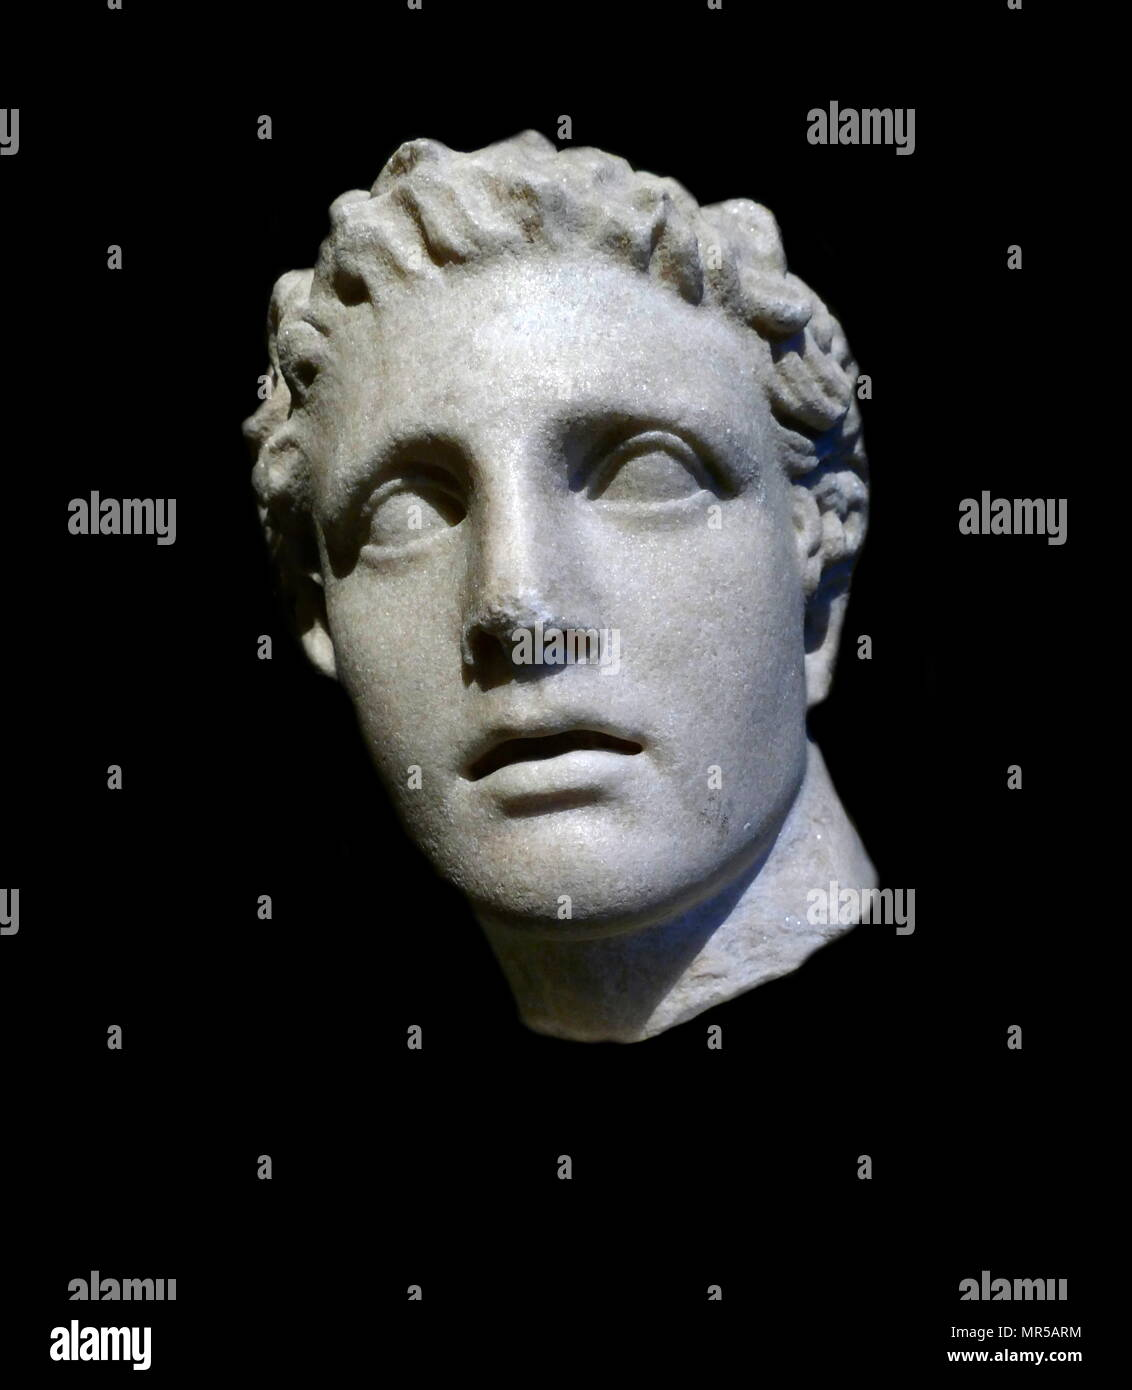 Copy of a 2nd century BC head of the Greek God Ares, God of War. Dated 2nd Century BC - Stock Image